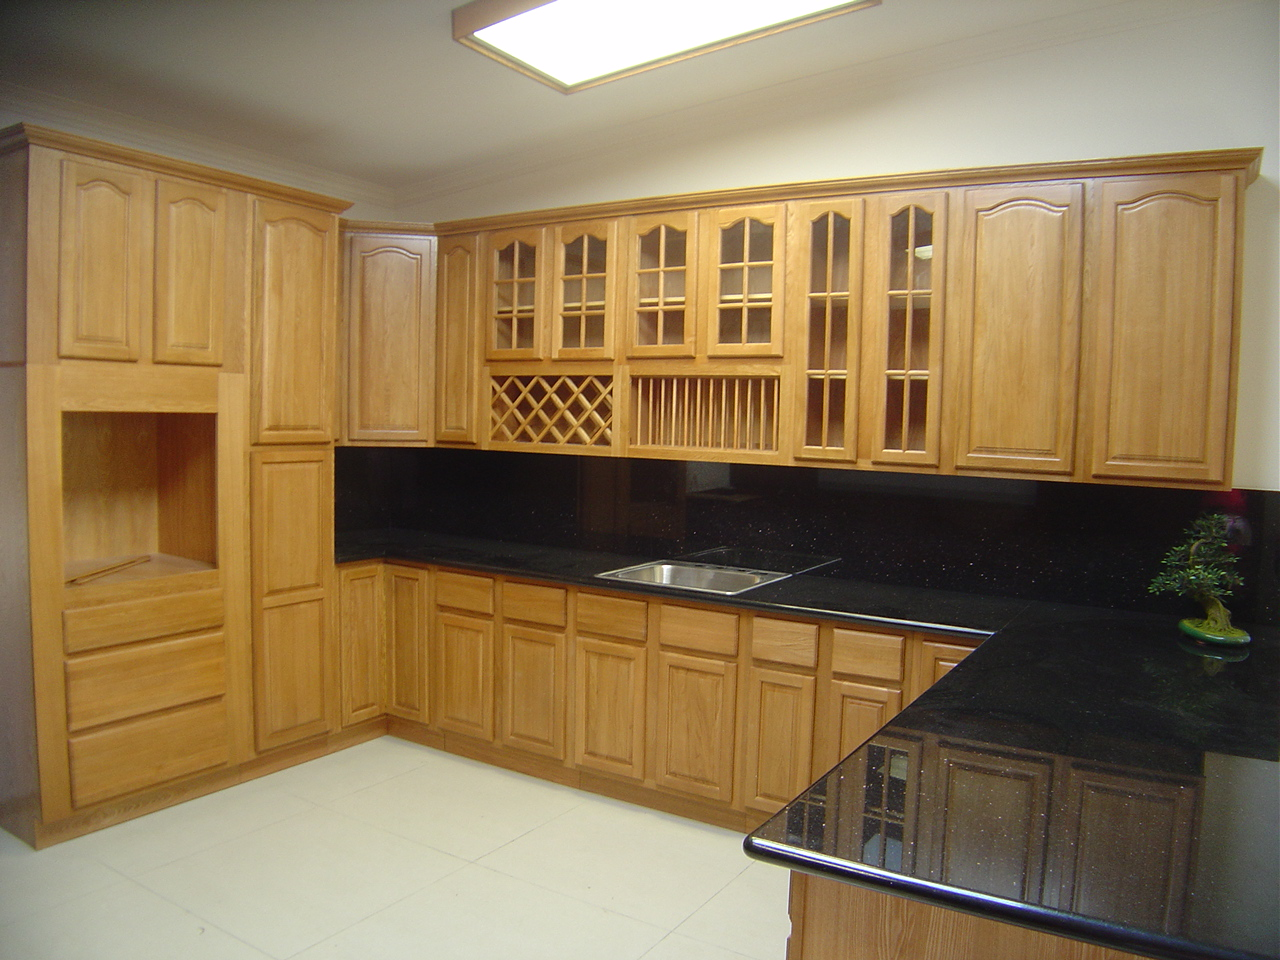 Kitchen Design Ideas with Oak Cabinets